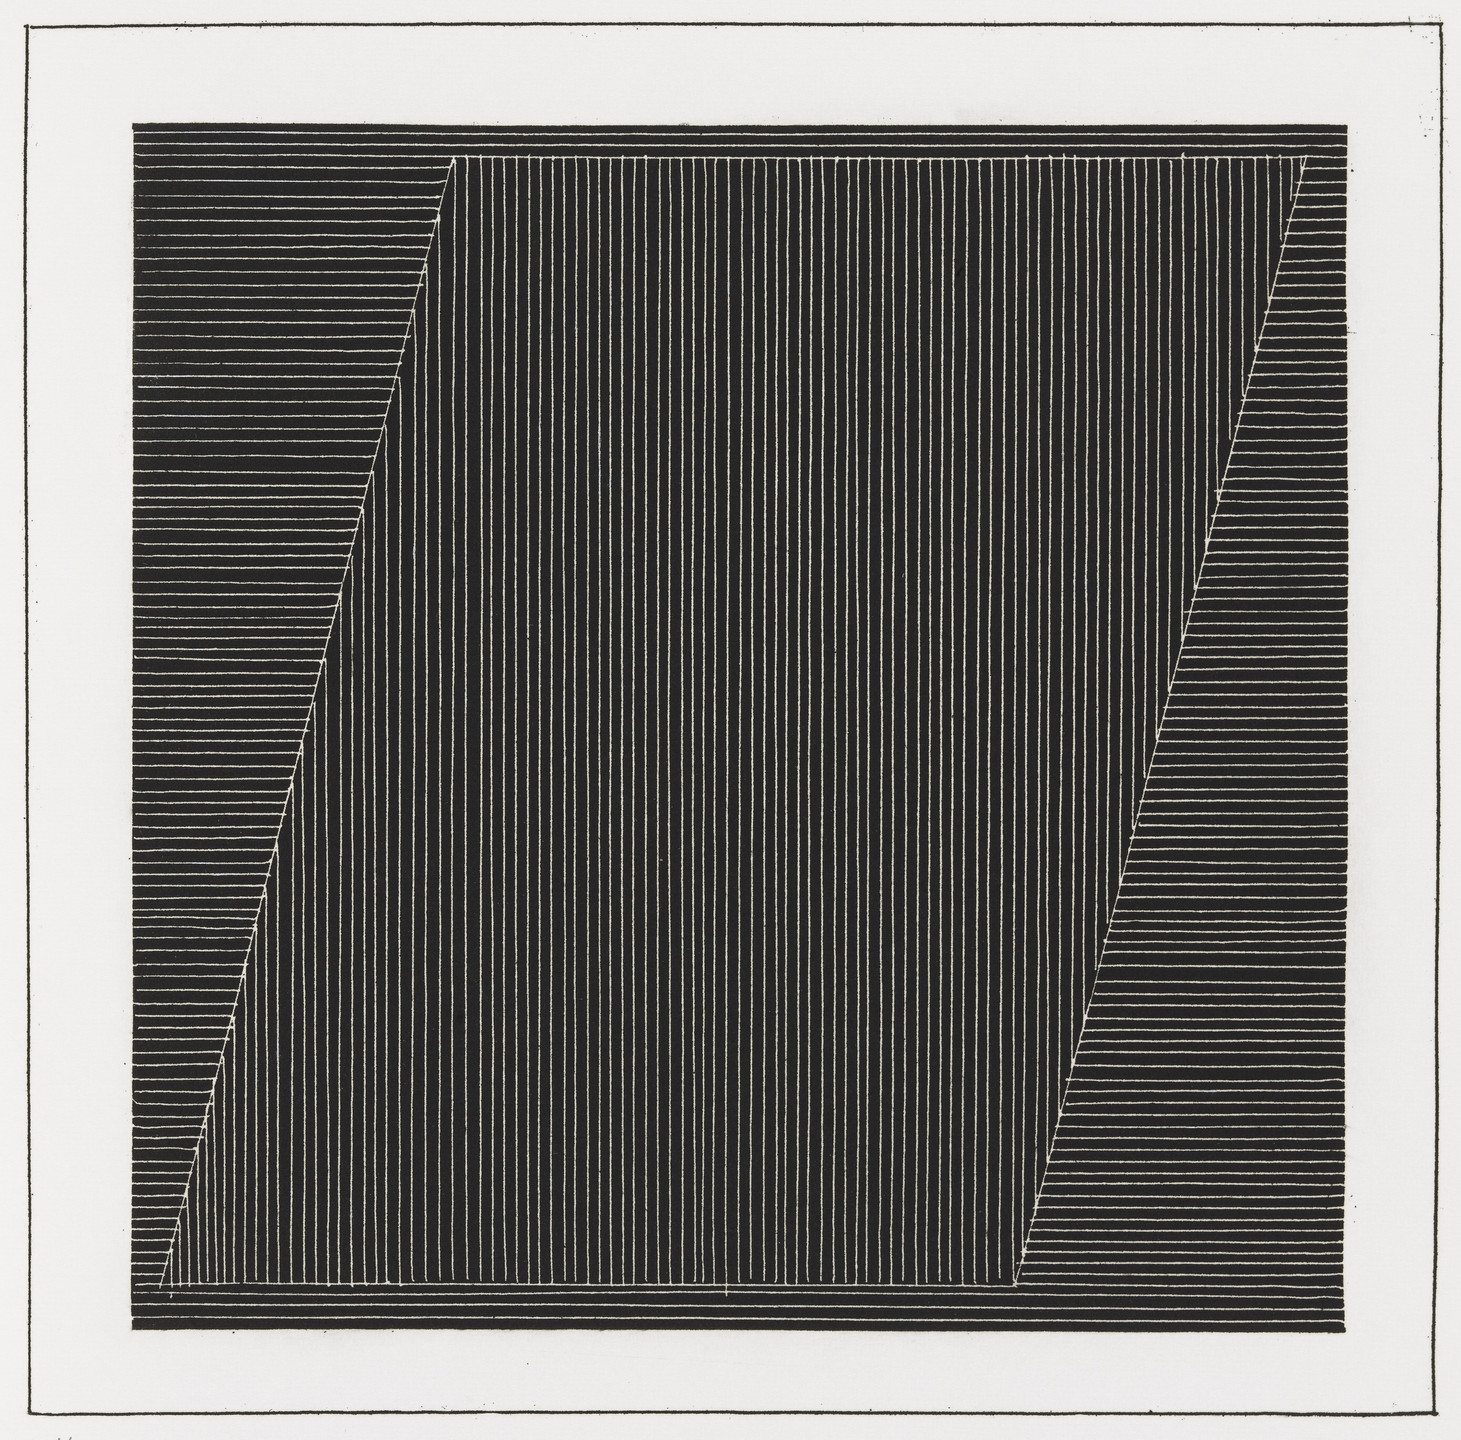 Sol LeWitt. Plate (folio 7) from Six Geometric Figures and All Their Combinations, Volume I. 1980